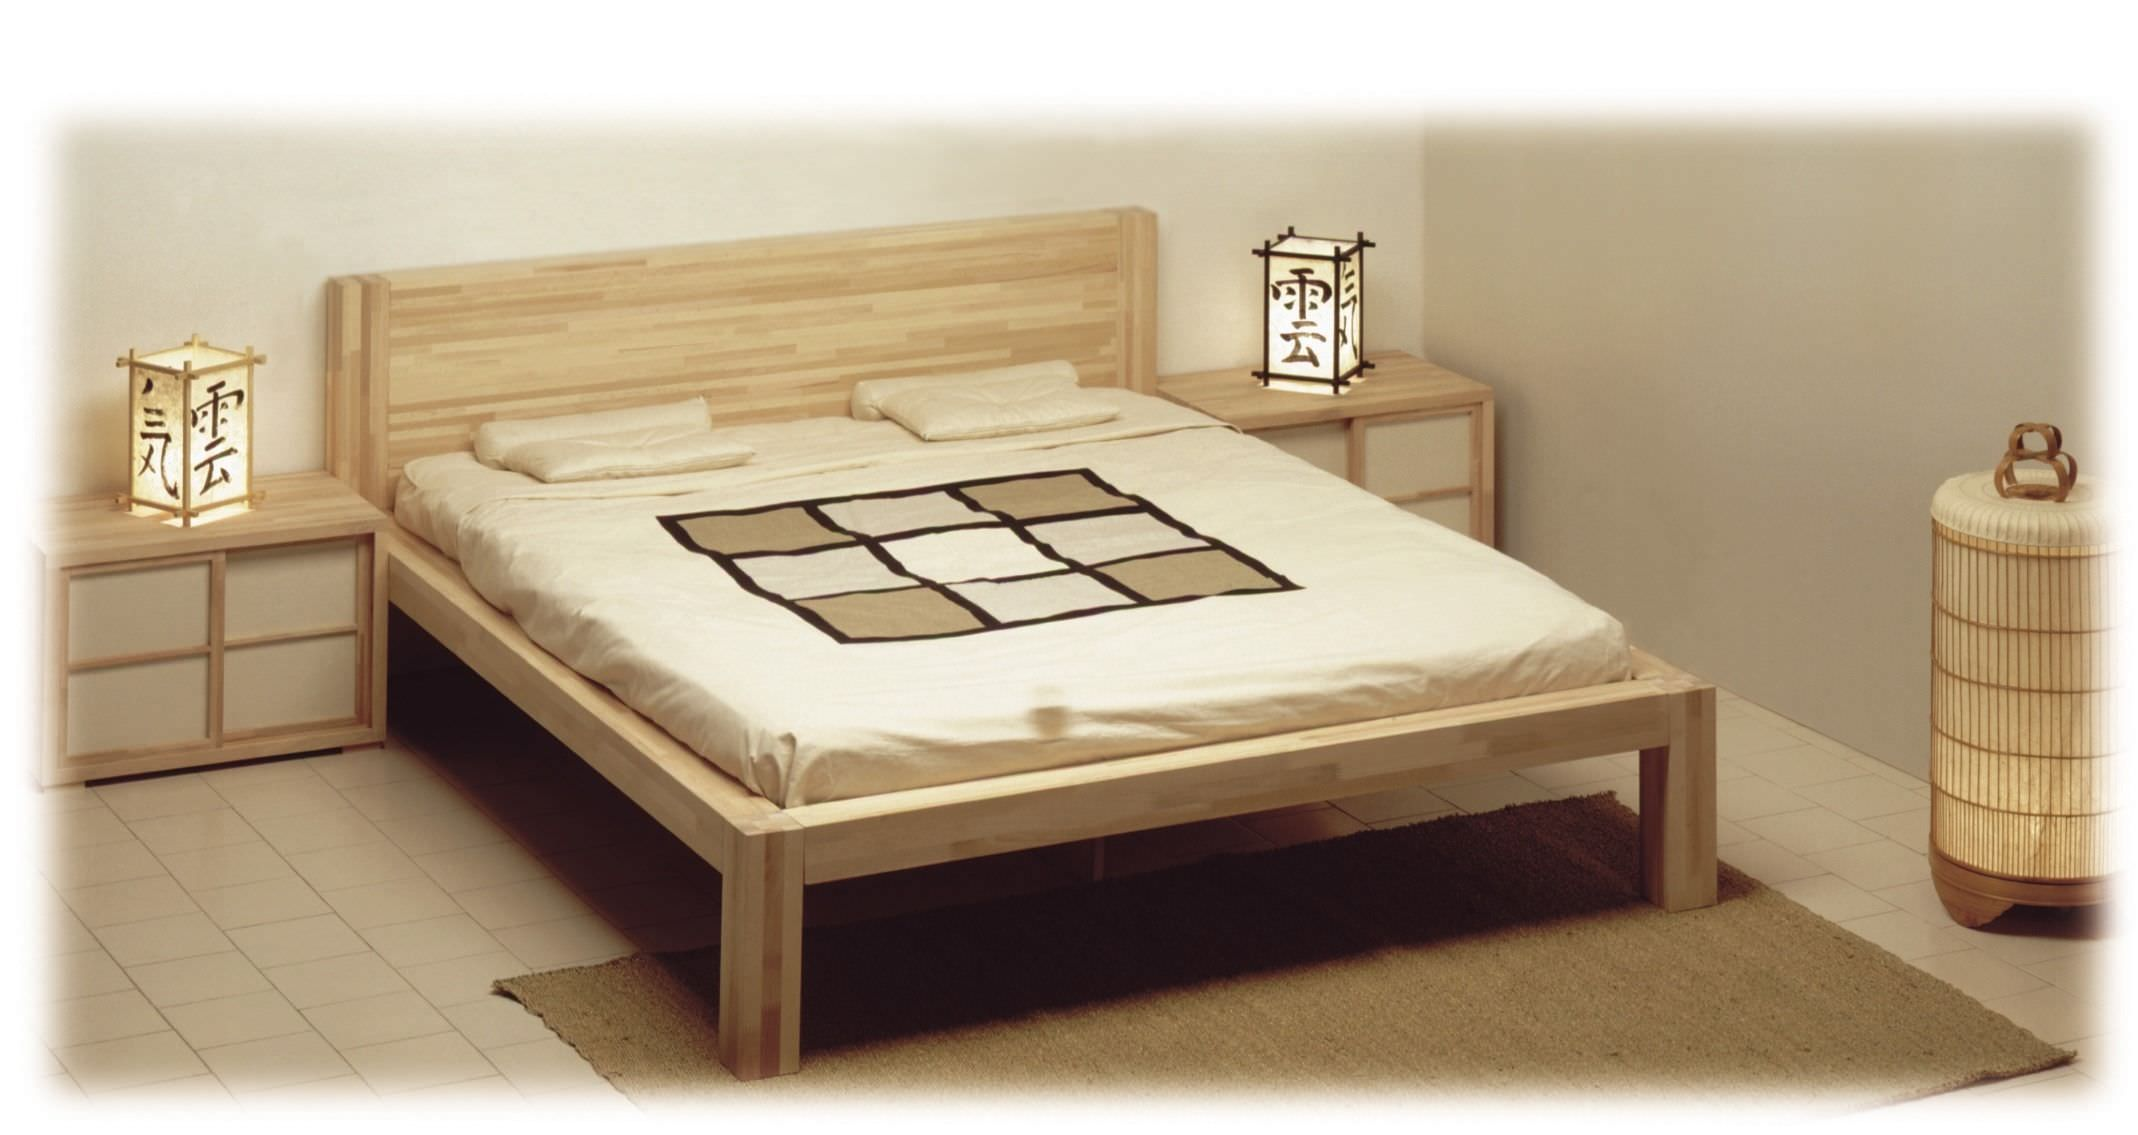 Cama Tatami Letto Tatami Ikea Beds Pinterest Bed Wood And Solid